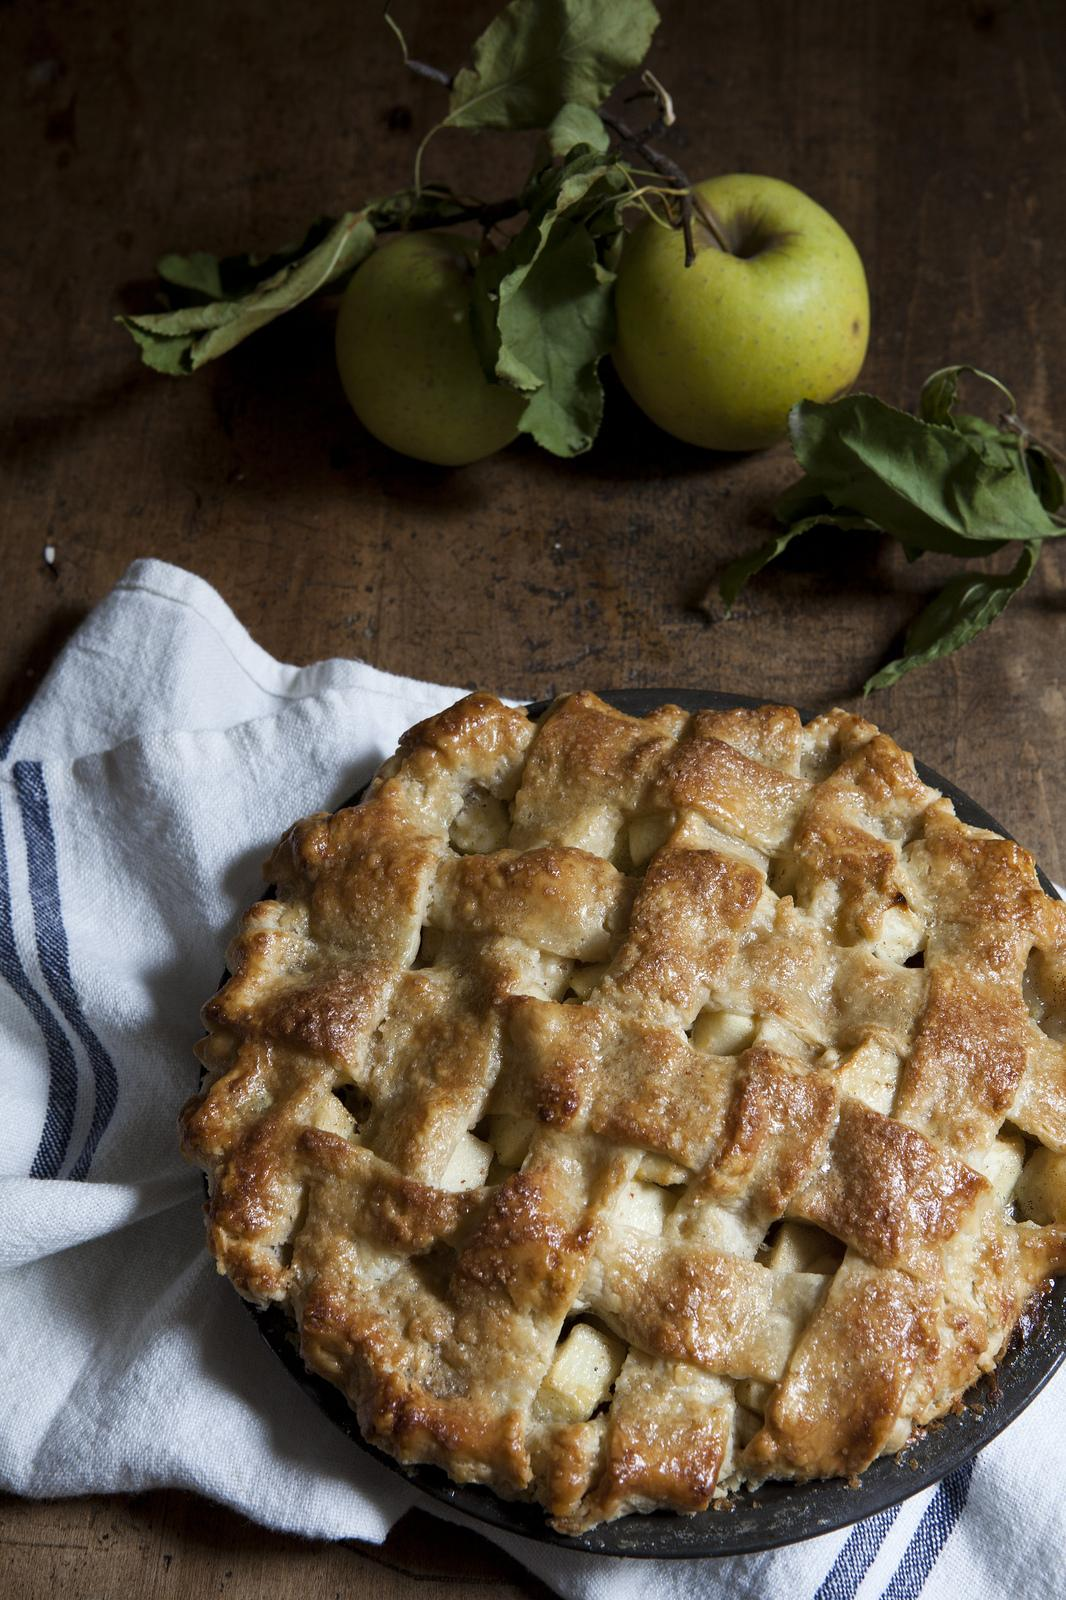 Apple Pie Nicole Franzen